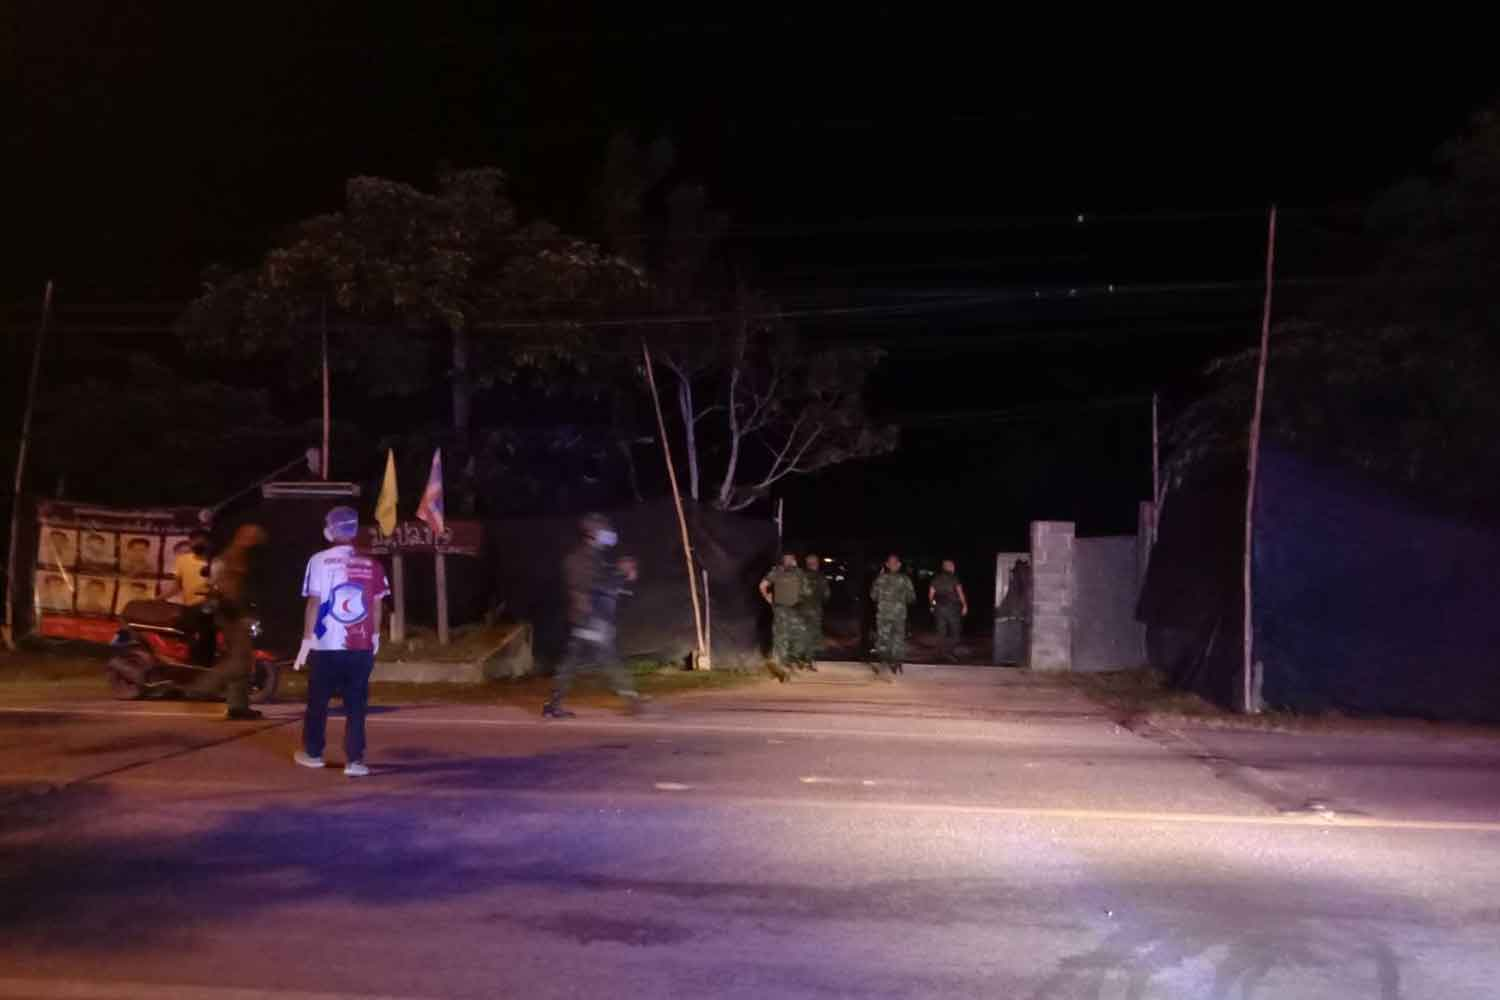 Soldiers at the entrance to the military base at Ban Khuan in tambon Phron of Yala's Muang district after a pipe bomb was thrown into the grounds on Monday night. One soldier was wounded by the explosion. (Photo: Abdullah Benjakat)